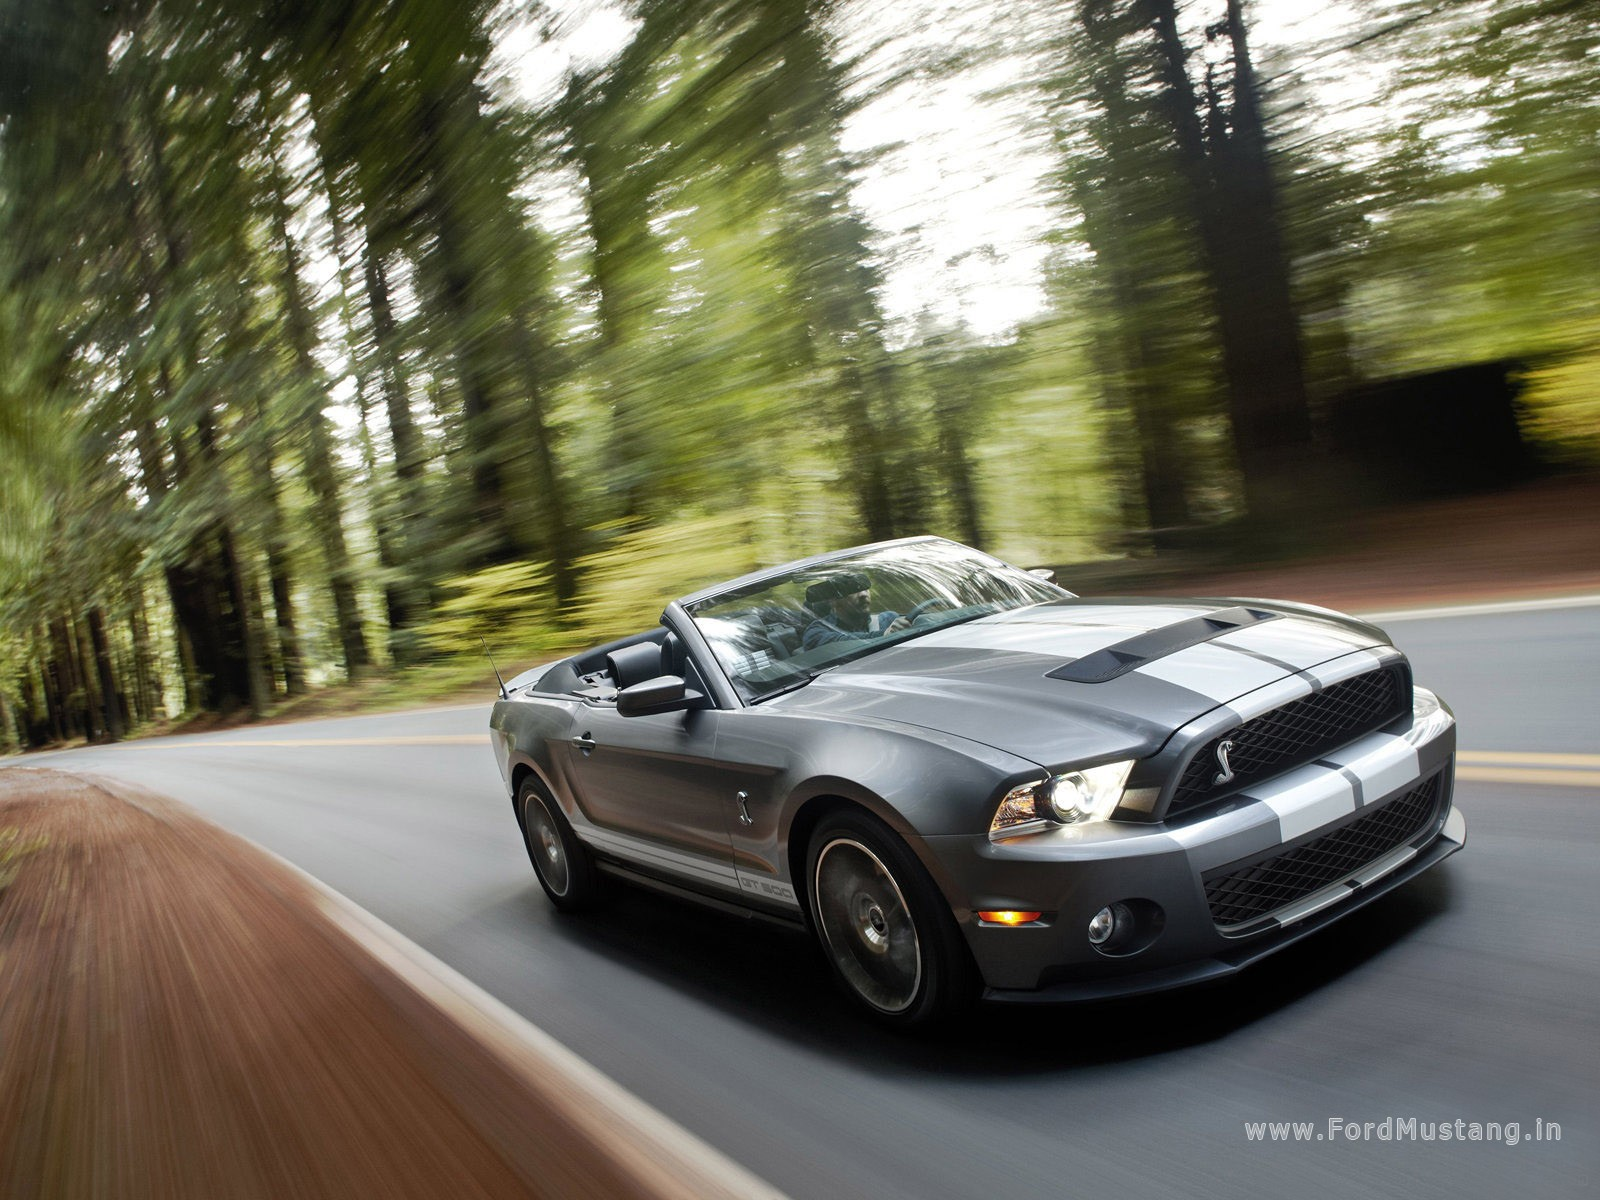 2010 Ford Mustang Shelby GT500 Convertible photo - 2